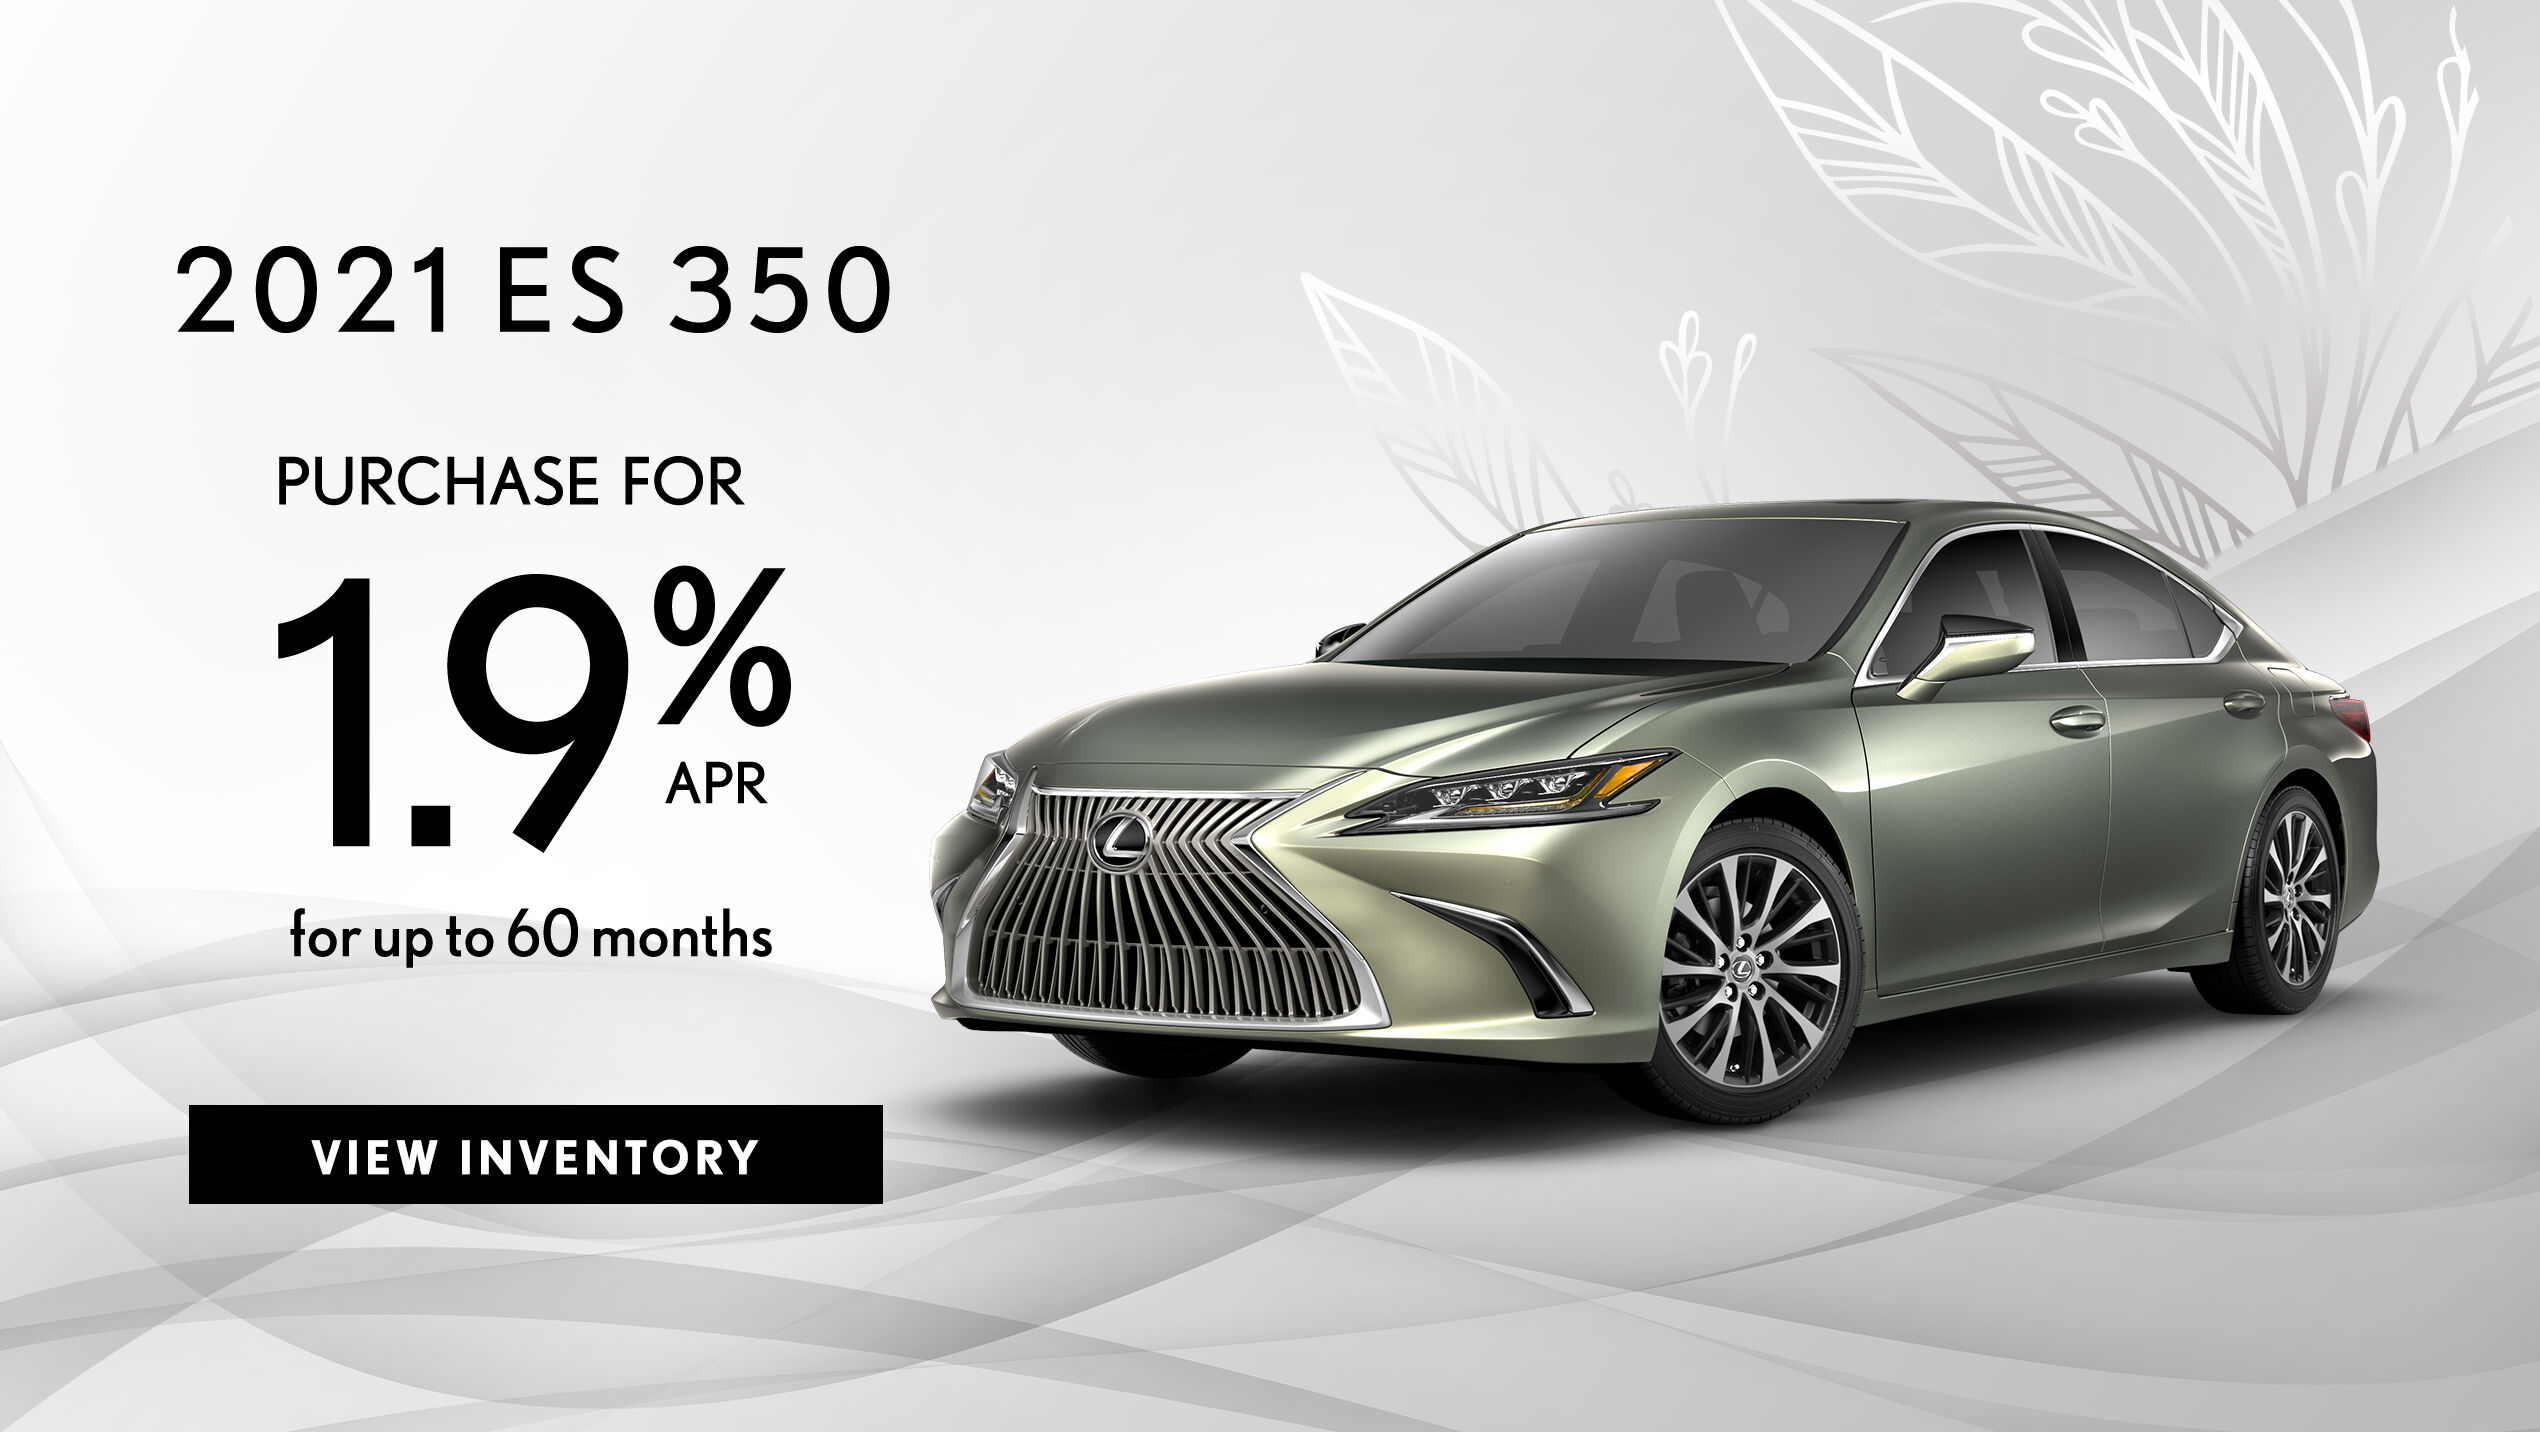 Take advantage of 1.9% APR for up to 60 months on a new 2021 ES 350.